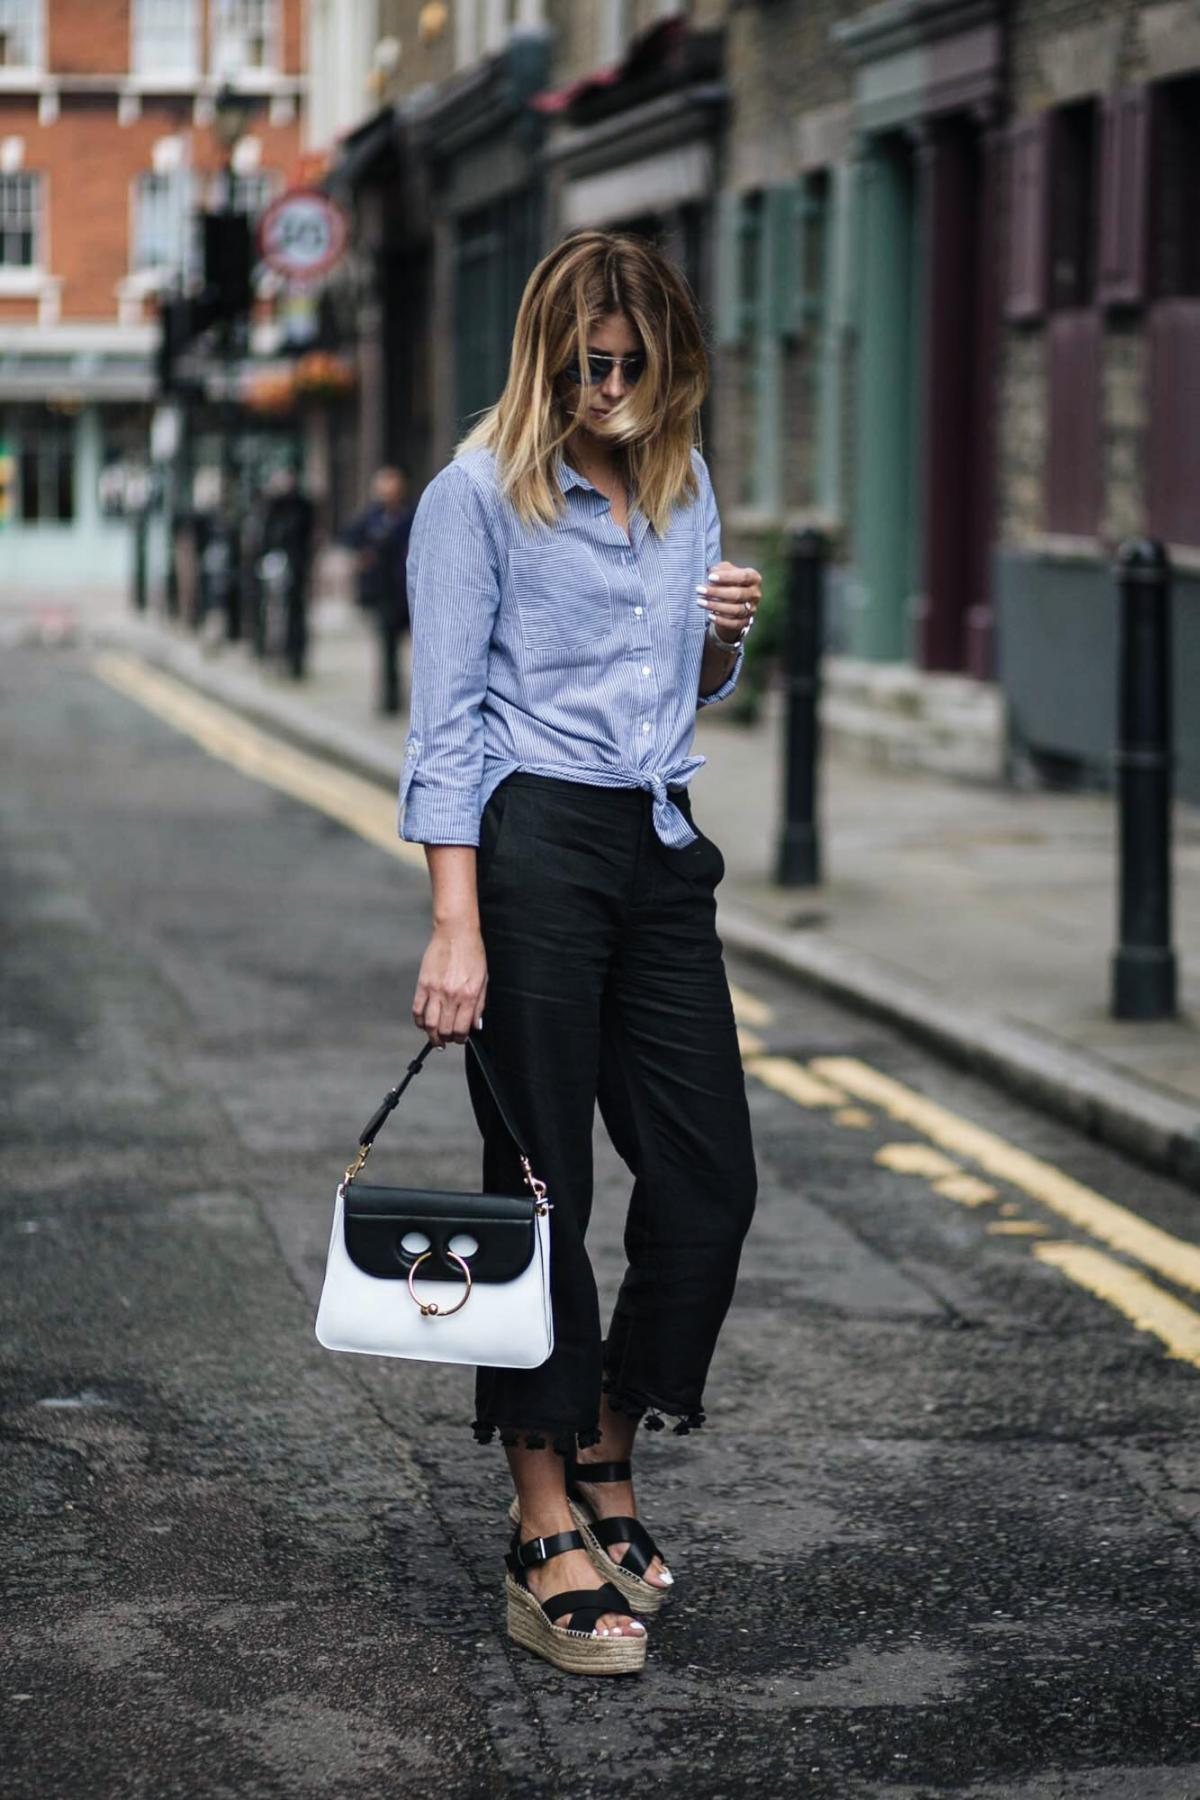 Zara pom pom hem black cropped trousers, wedge espadrilles, street style, JW Anderson monochrome Piercing bag, blue pinstripe shirt tied in a knot, chic summer outfit